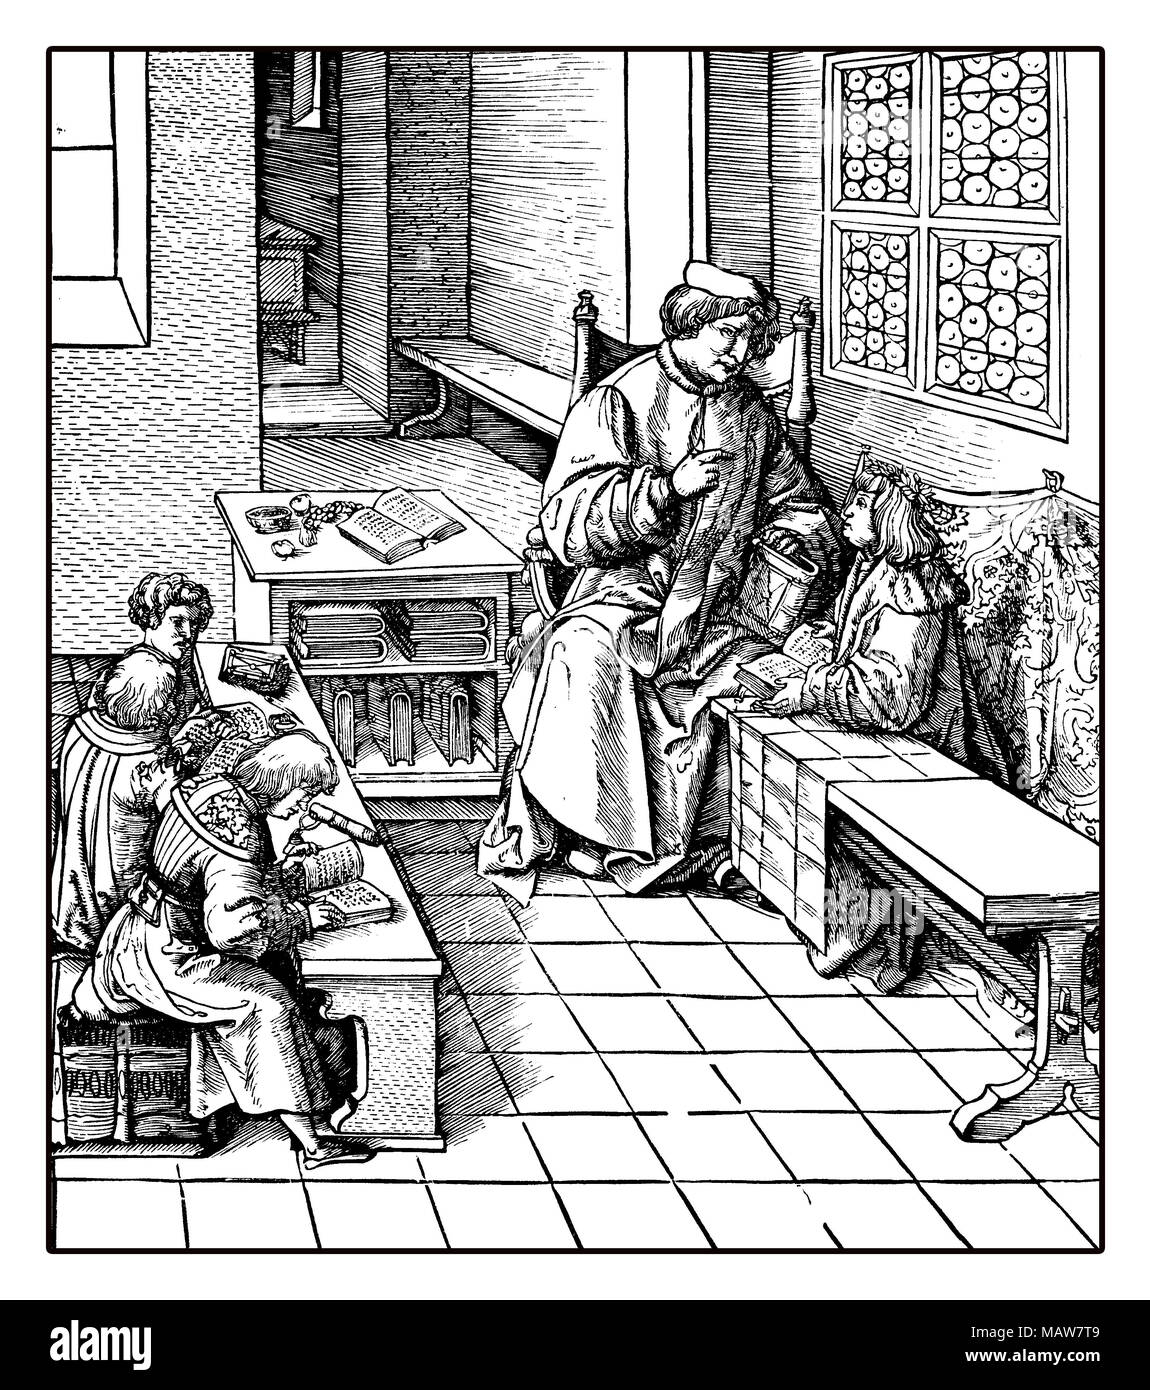 Holy Roman Emperor Maximilian tutoring the to be christened children, reproduction from an engraving of Hans Burgkmair, XVI century - Stock Image